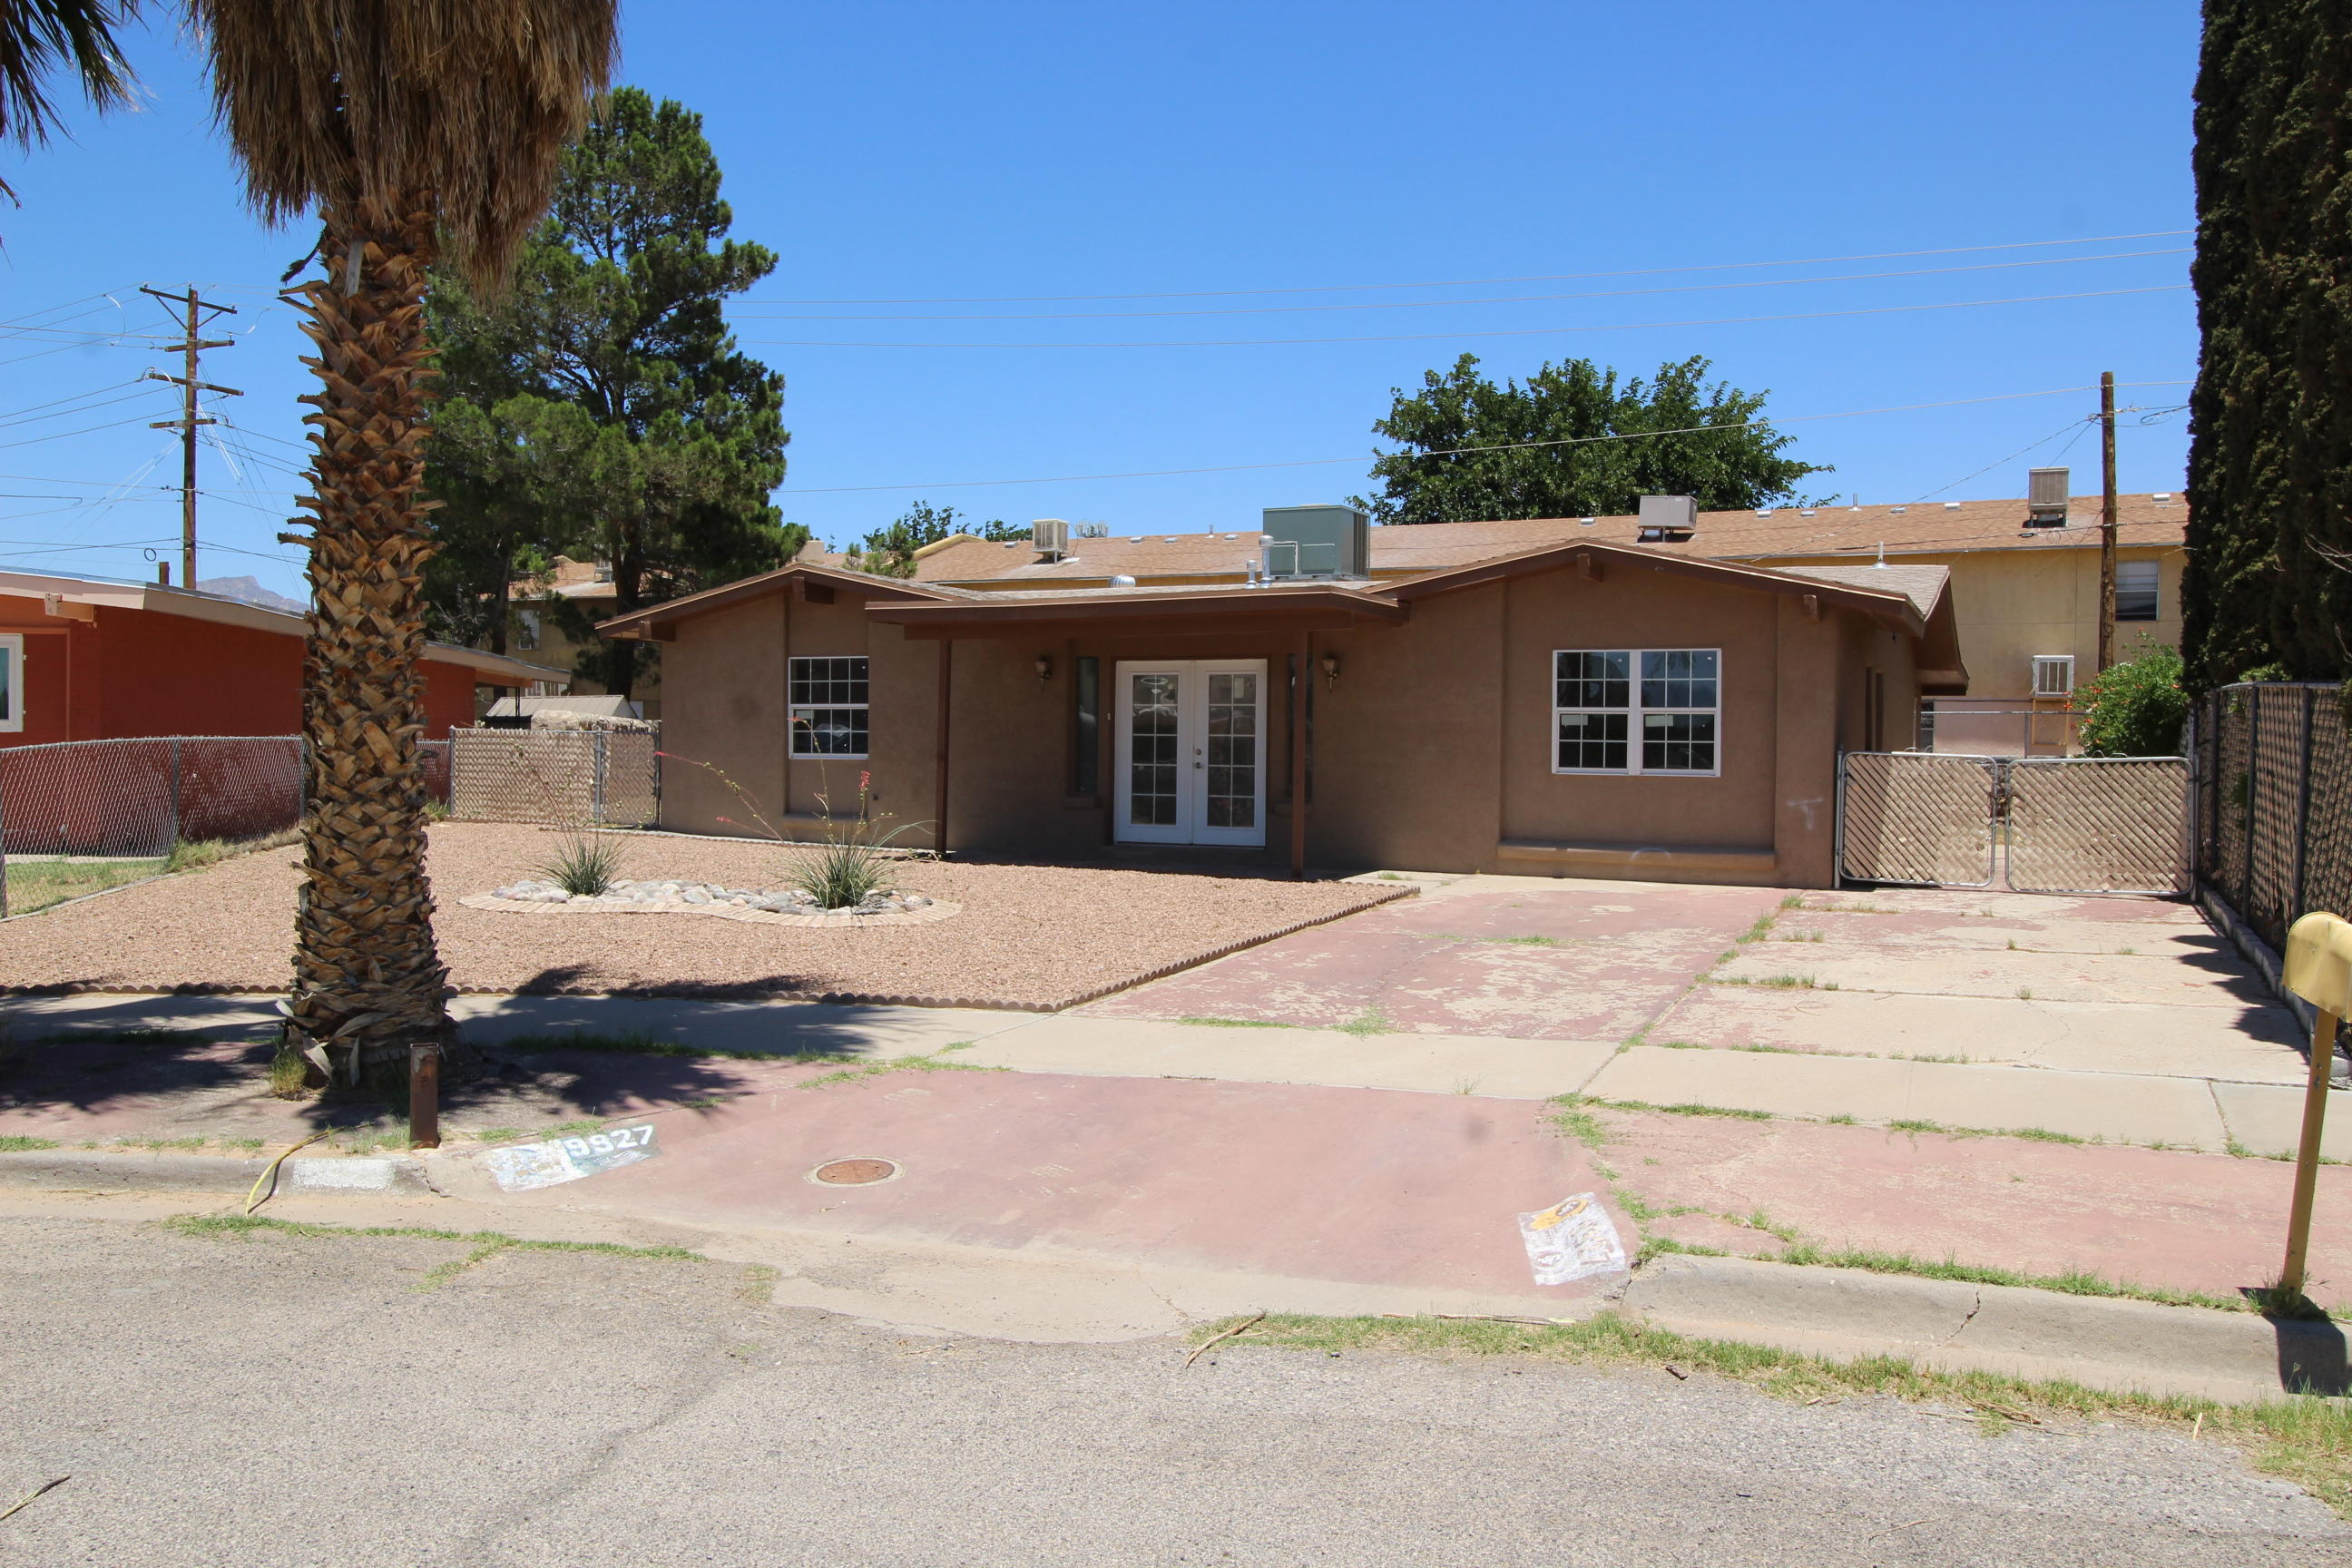 9927 AGENA, El Paso, Texas 79924, 3 Bedrooms Bedrooms, ,2 BathroomsBathrooms,Residential,For sale,AGENA,810653